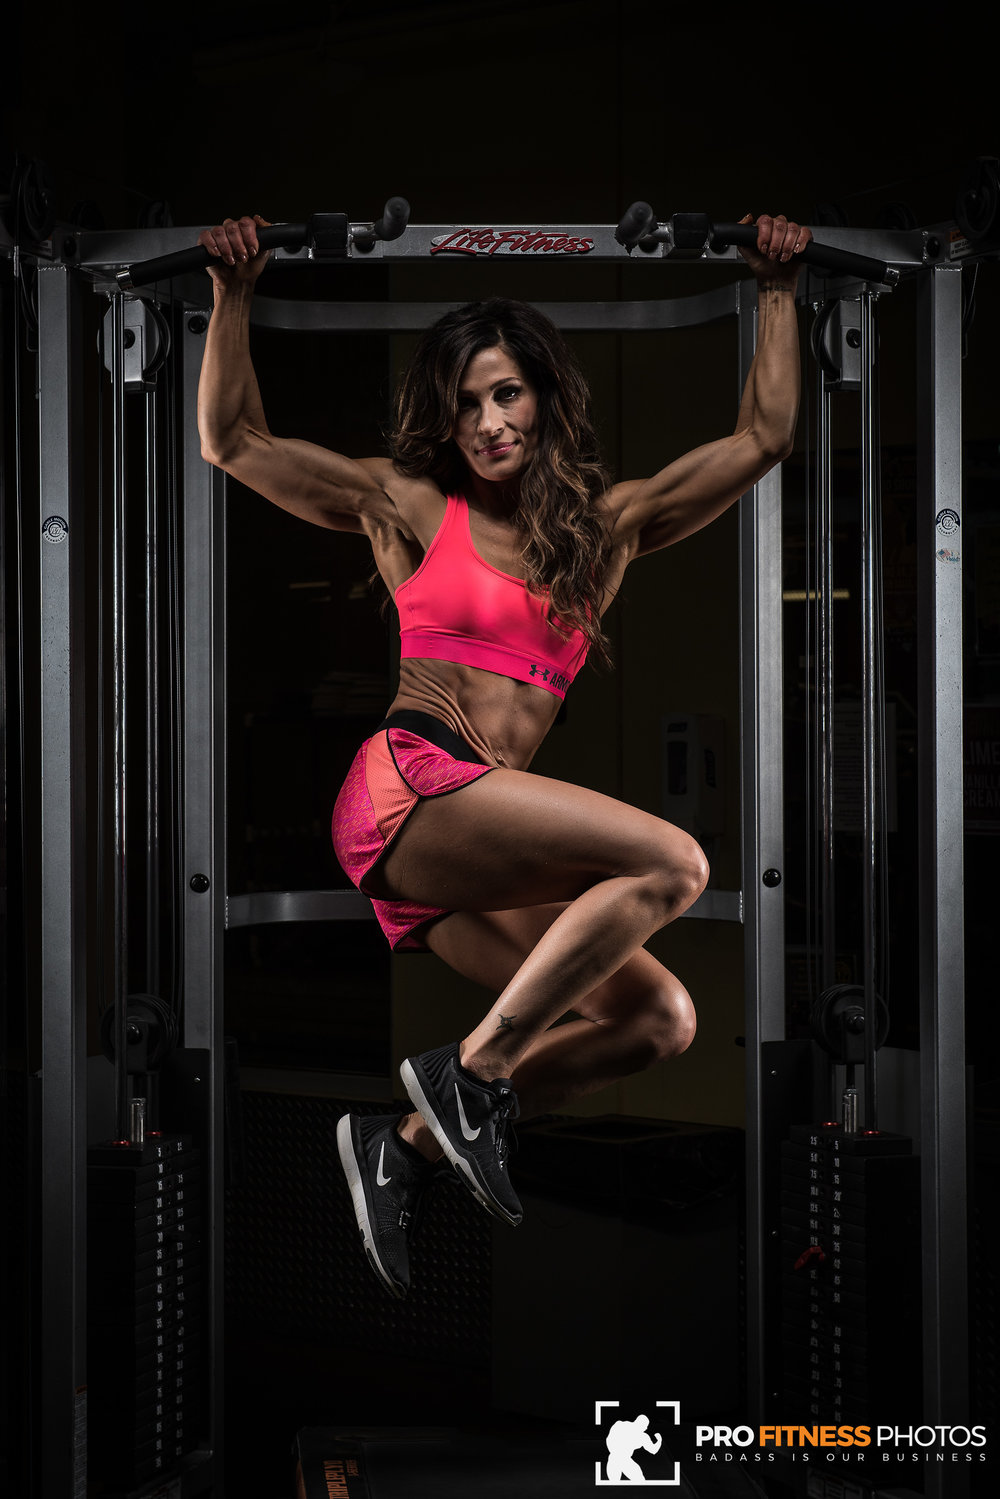 utah-fitness-photography-jennifer-03.jpg